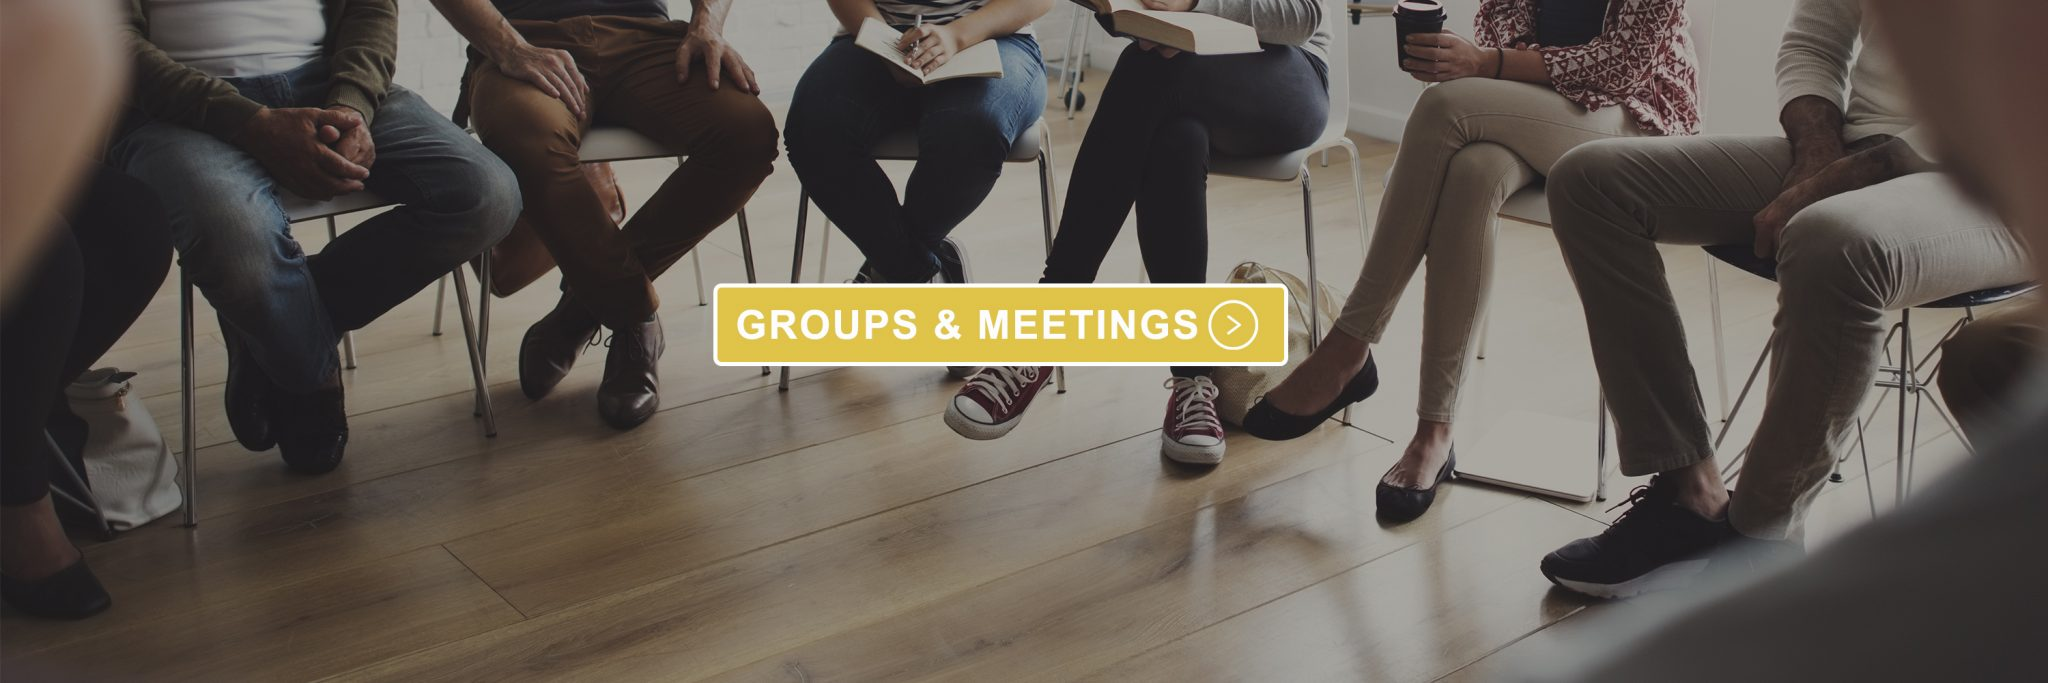 Groups and Meetings